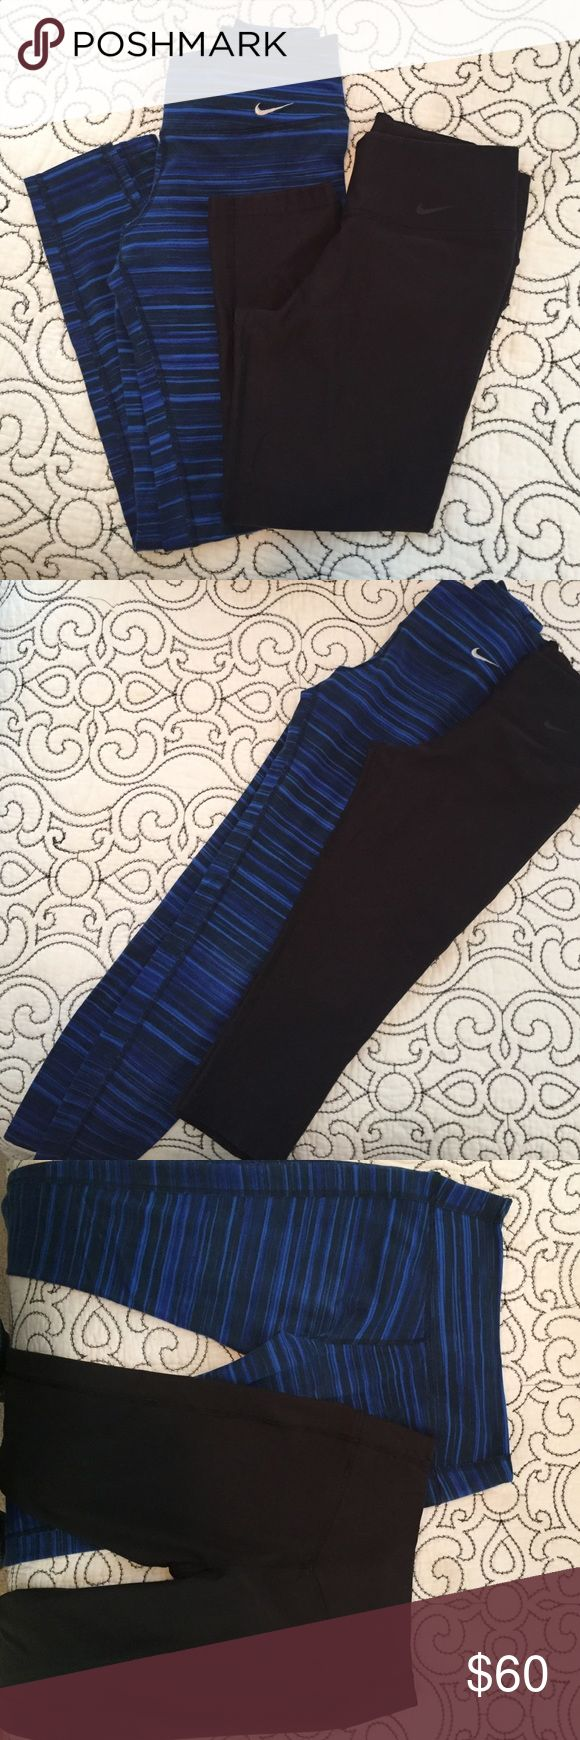 Nike pant bundle One black Nike dri-fit capri pant and one Nike Dri-fit  blue and black ankle pant. Both smalls. Minimal wear. Slight fade in the blue on the ankle pants. Always received compliments. Nike Pants Ankle & Cropped